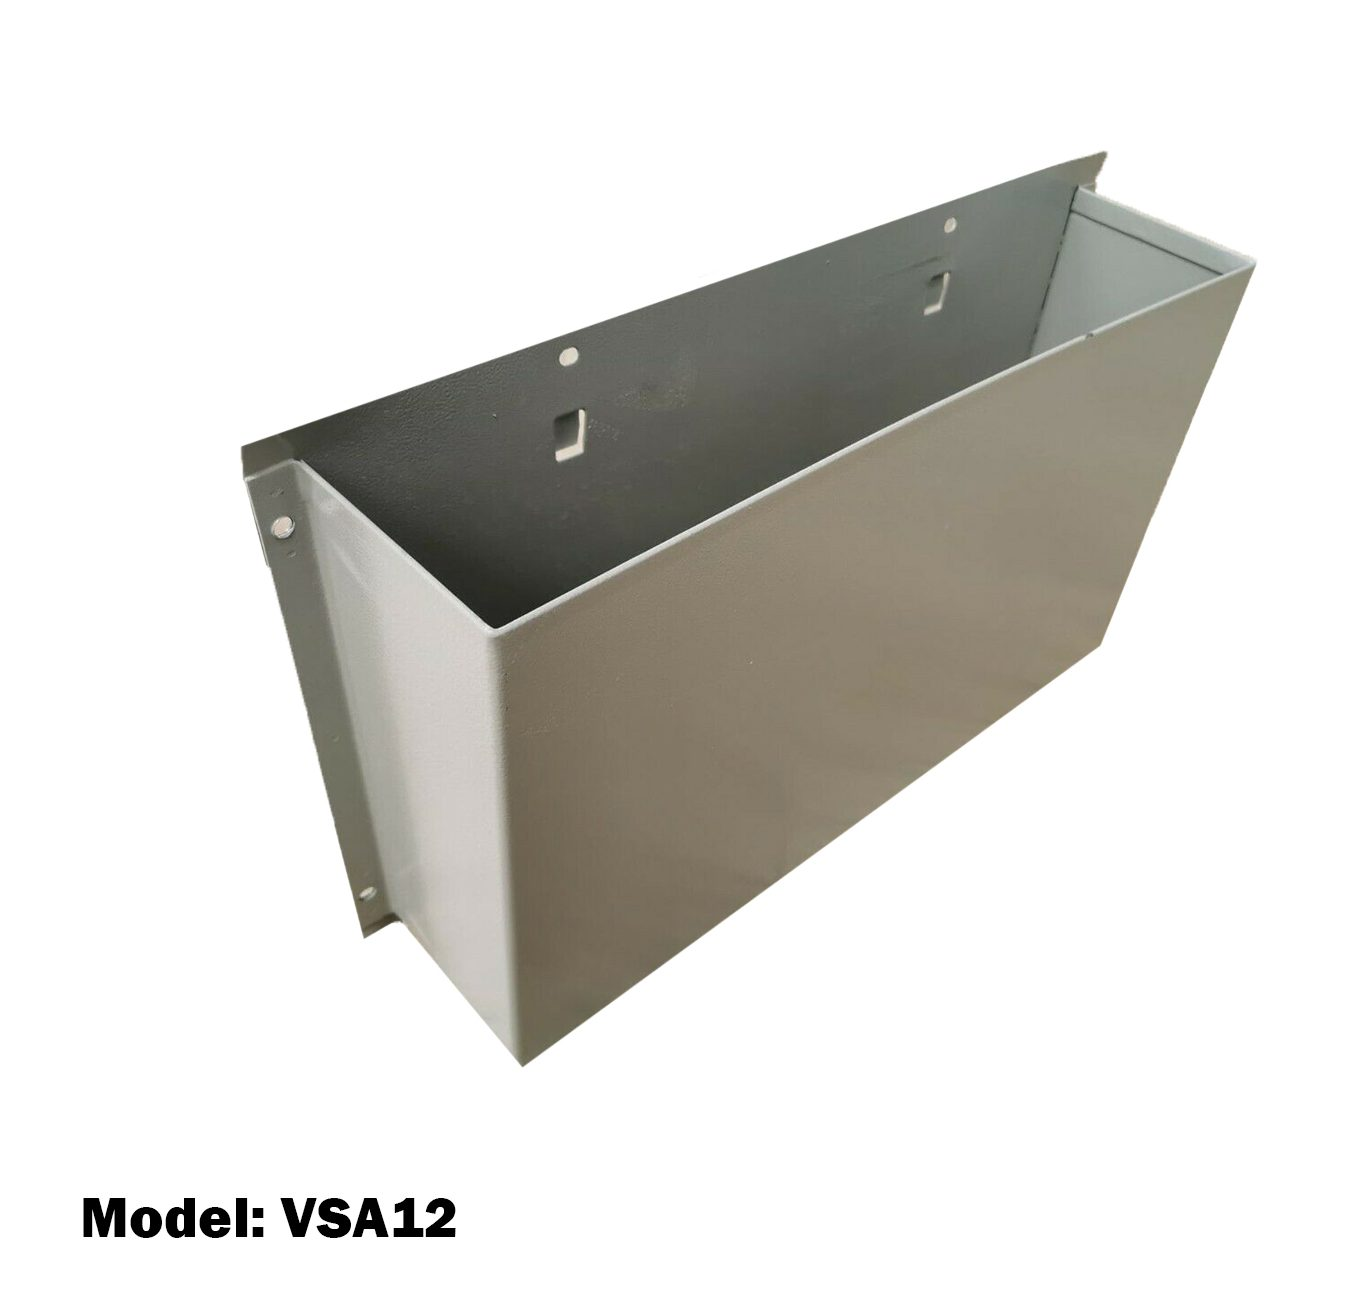 Van Shelving Carry Case Holder For Van Shelving System VSA12